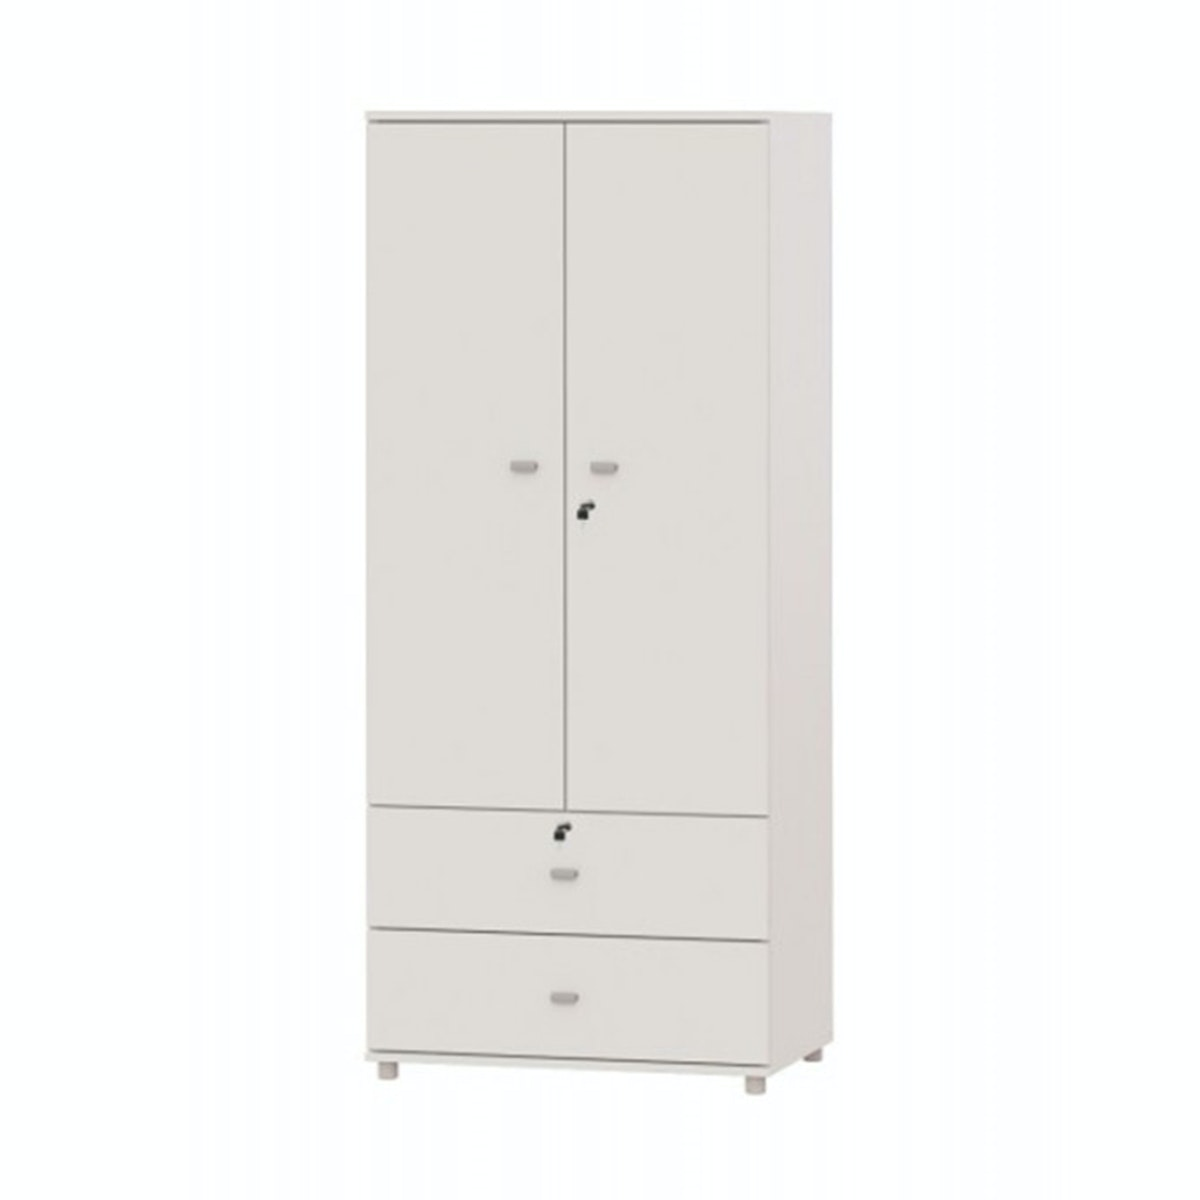 JYSK Wardrobe CANDY 2 doors 2 drawers with lock white